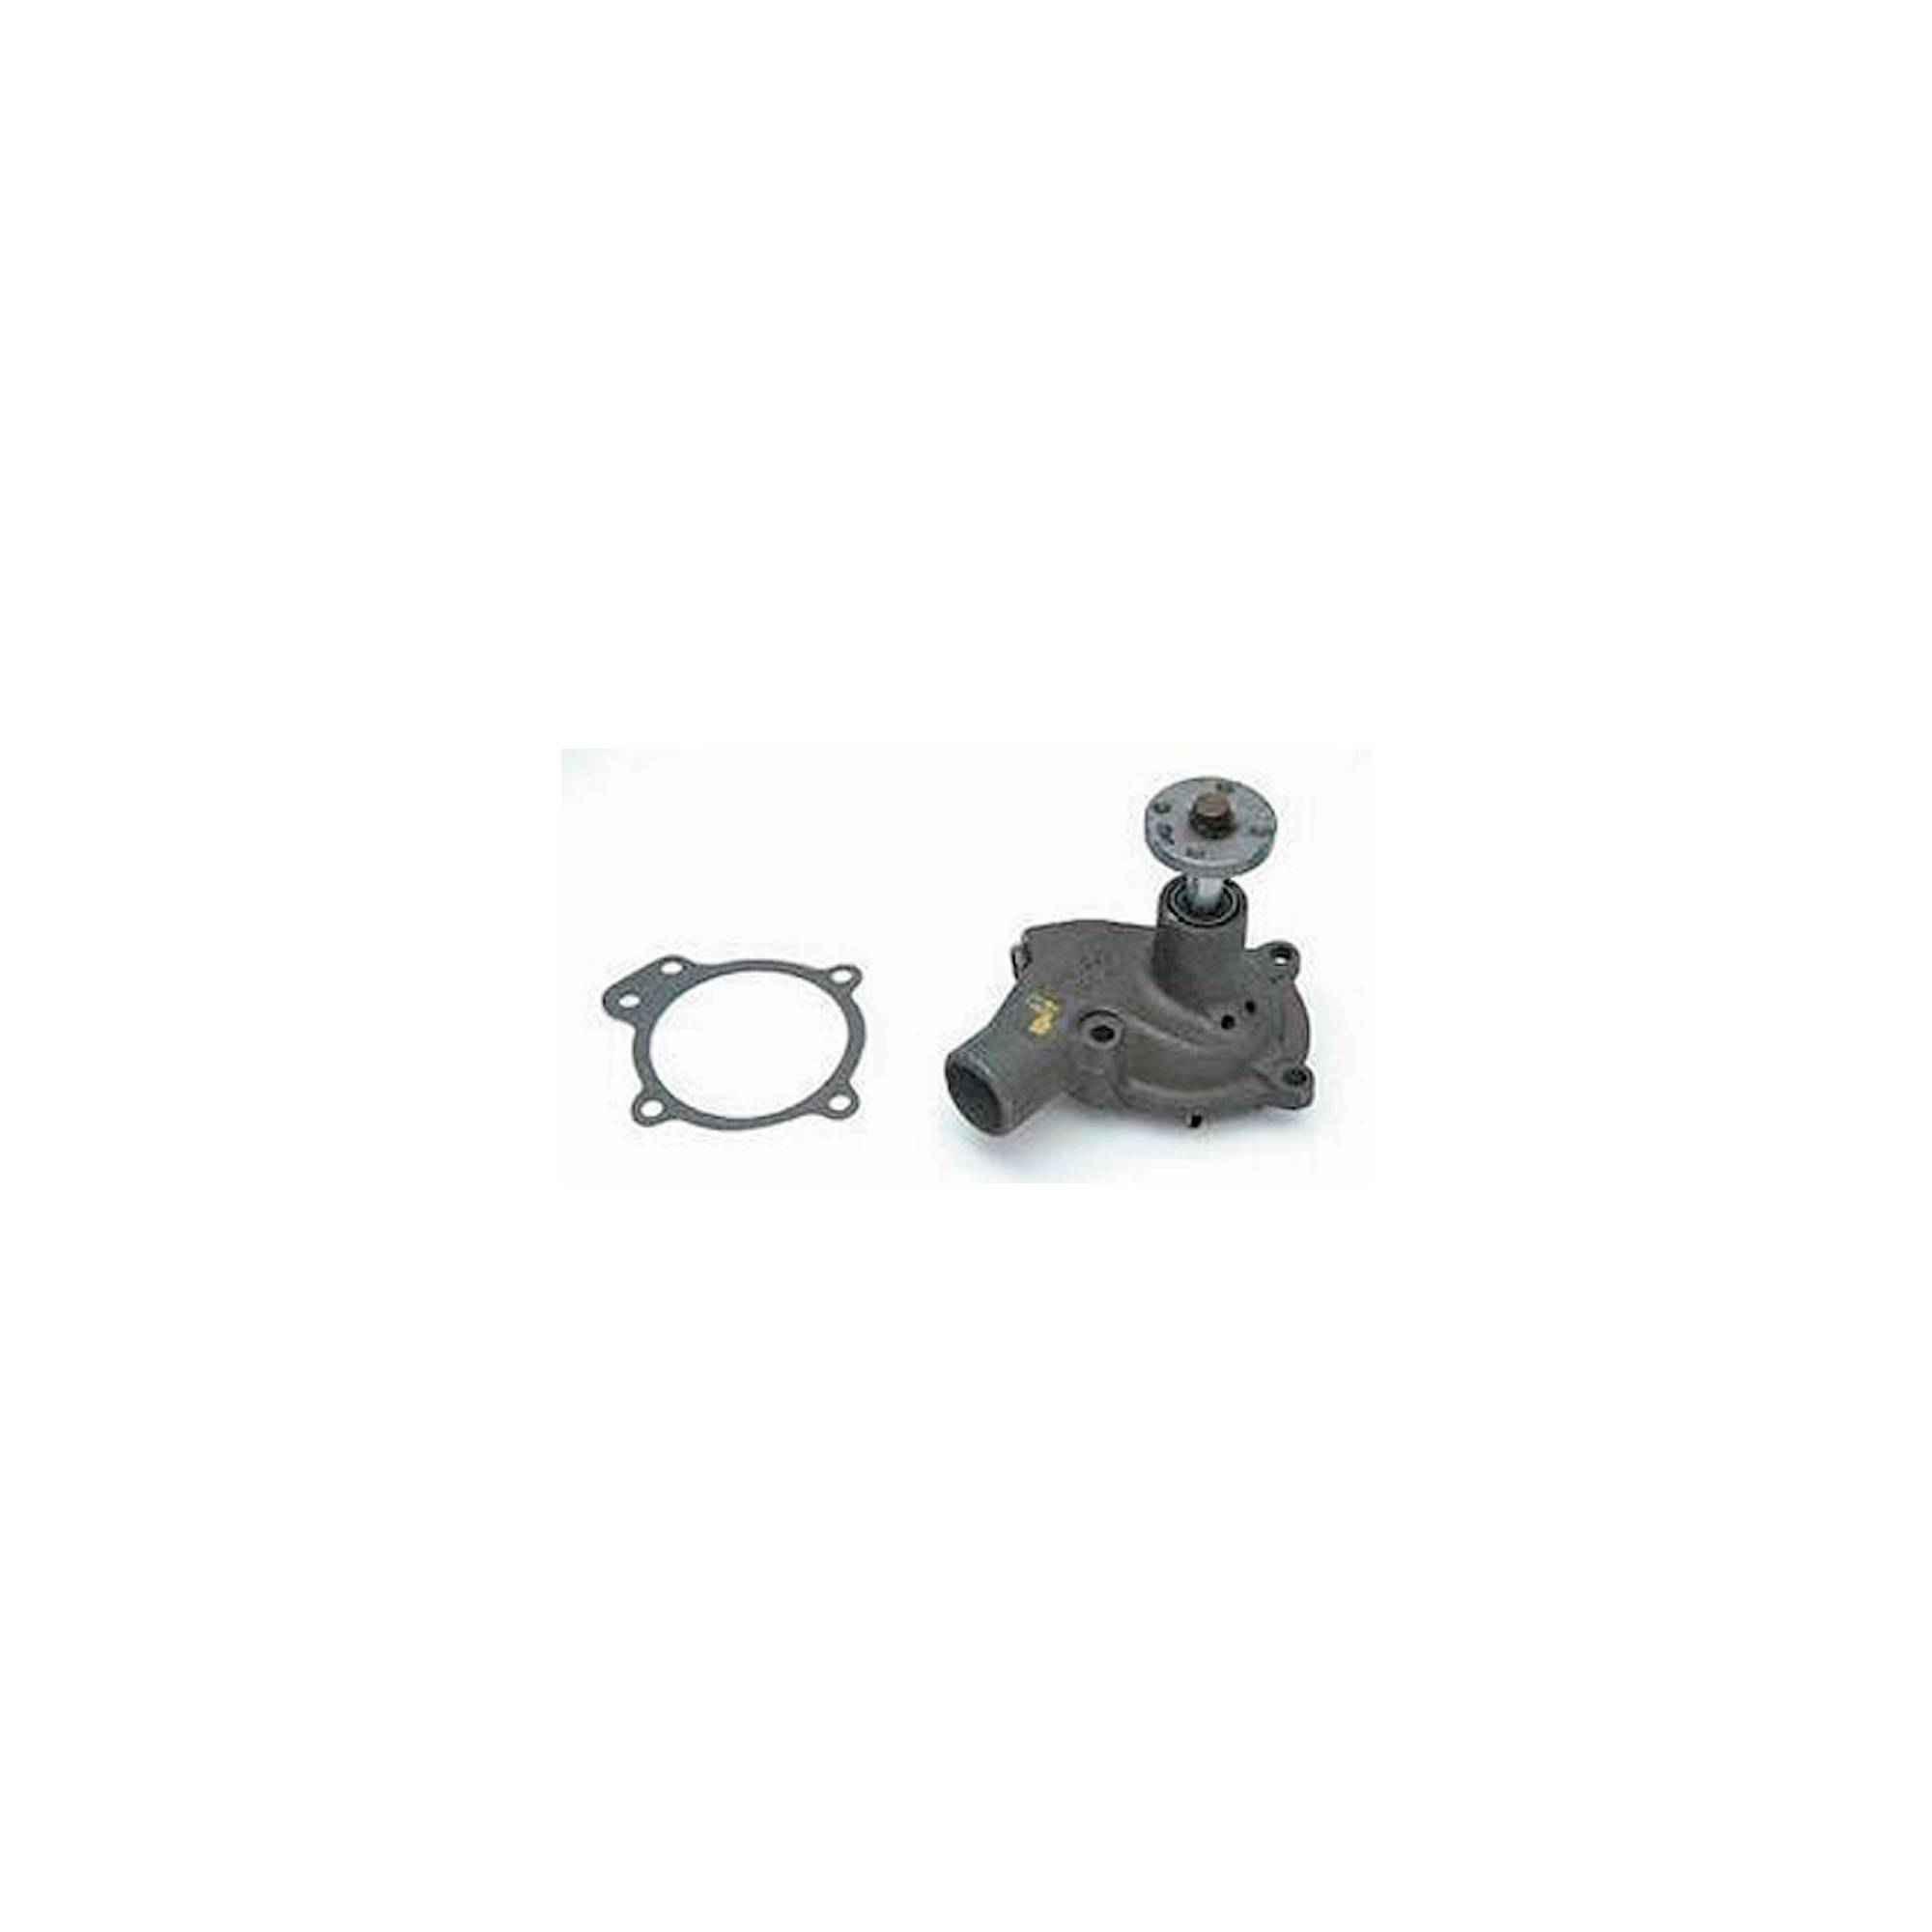 hight resolution of eckler s premier products 61248049 chevy truck water pump 235ci 6cylinder